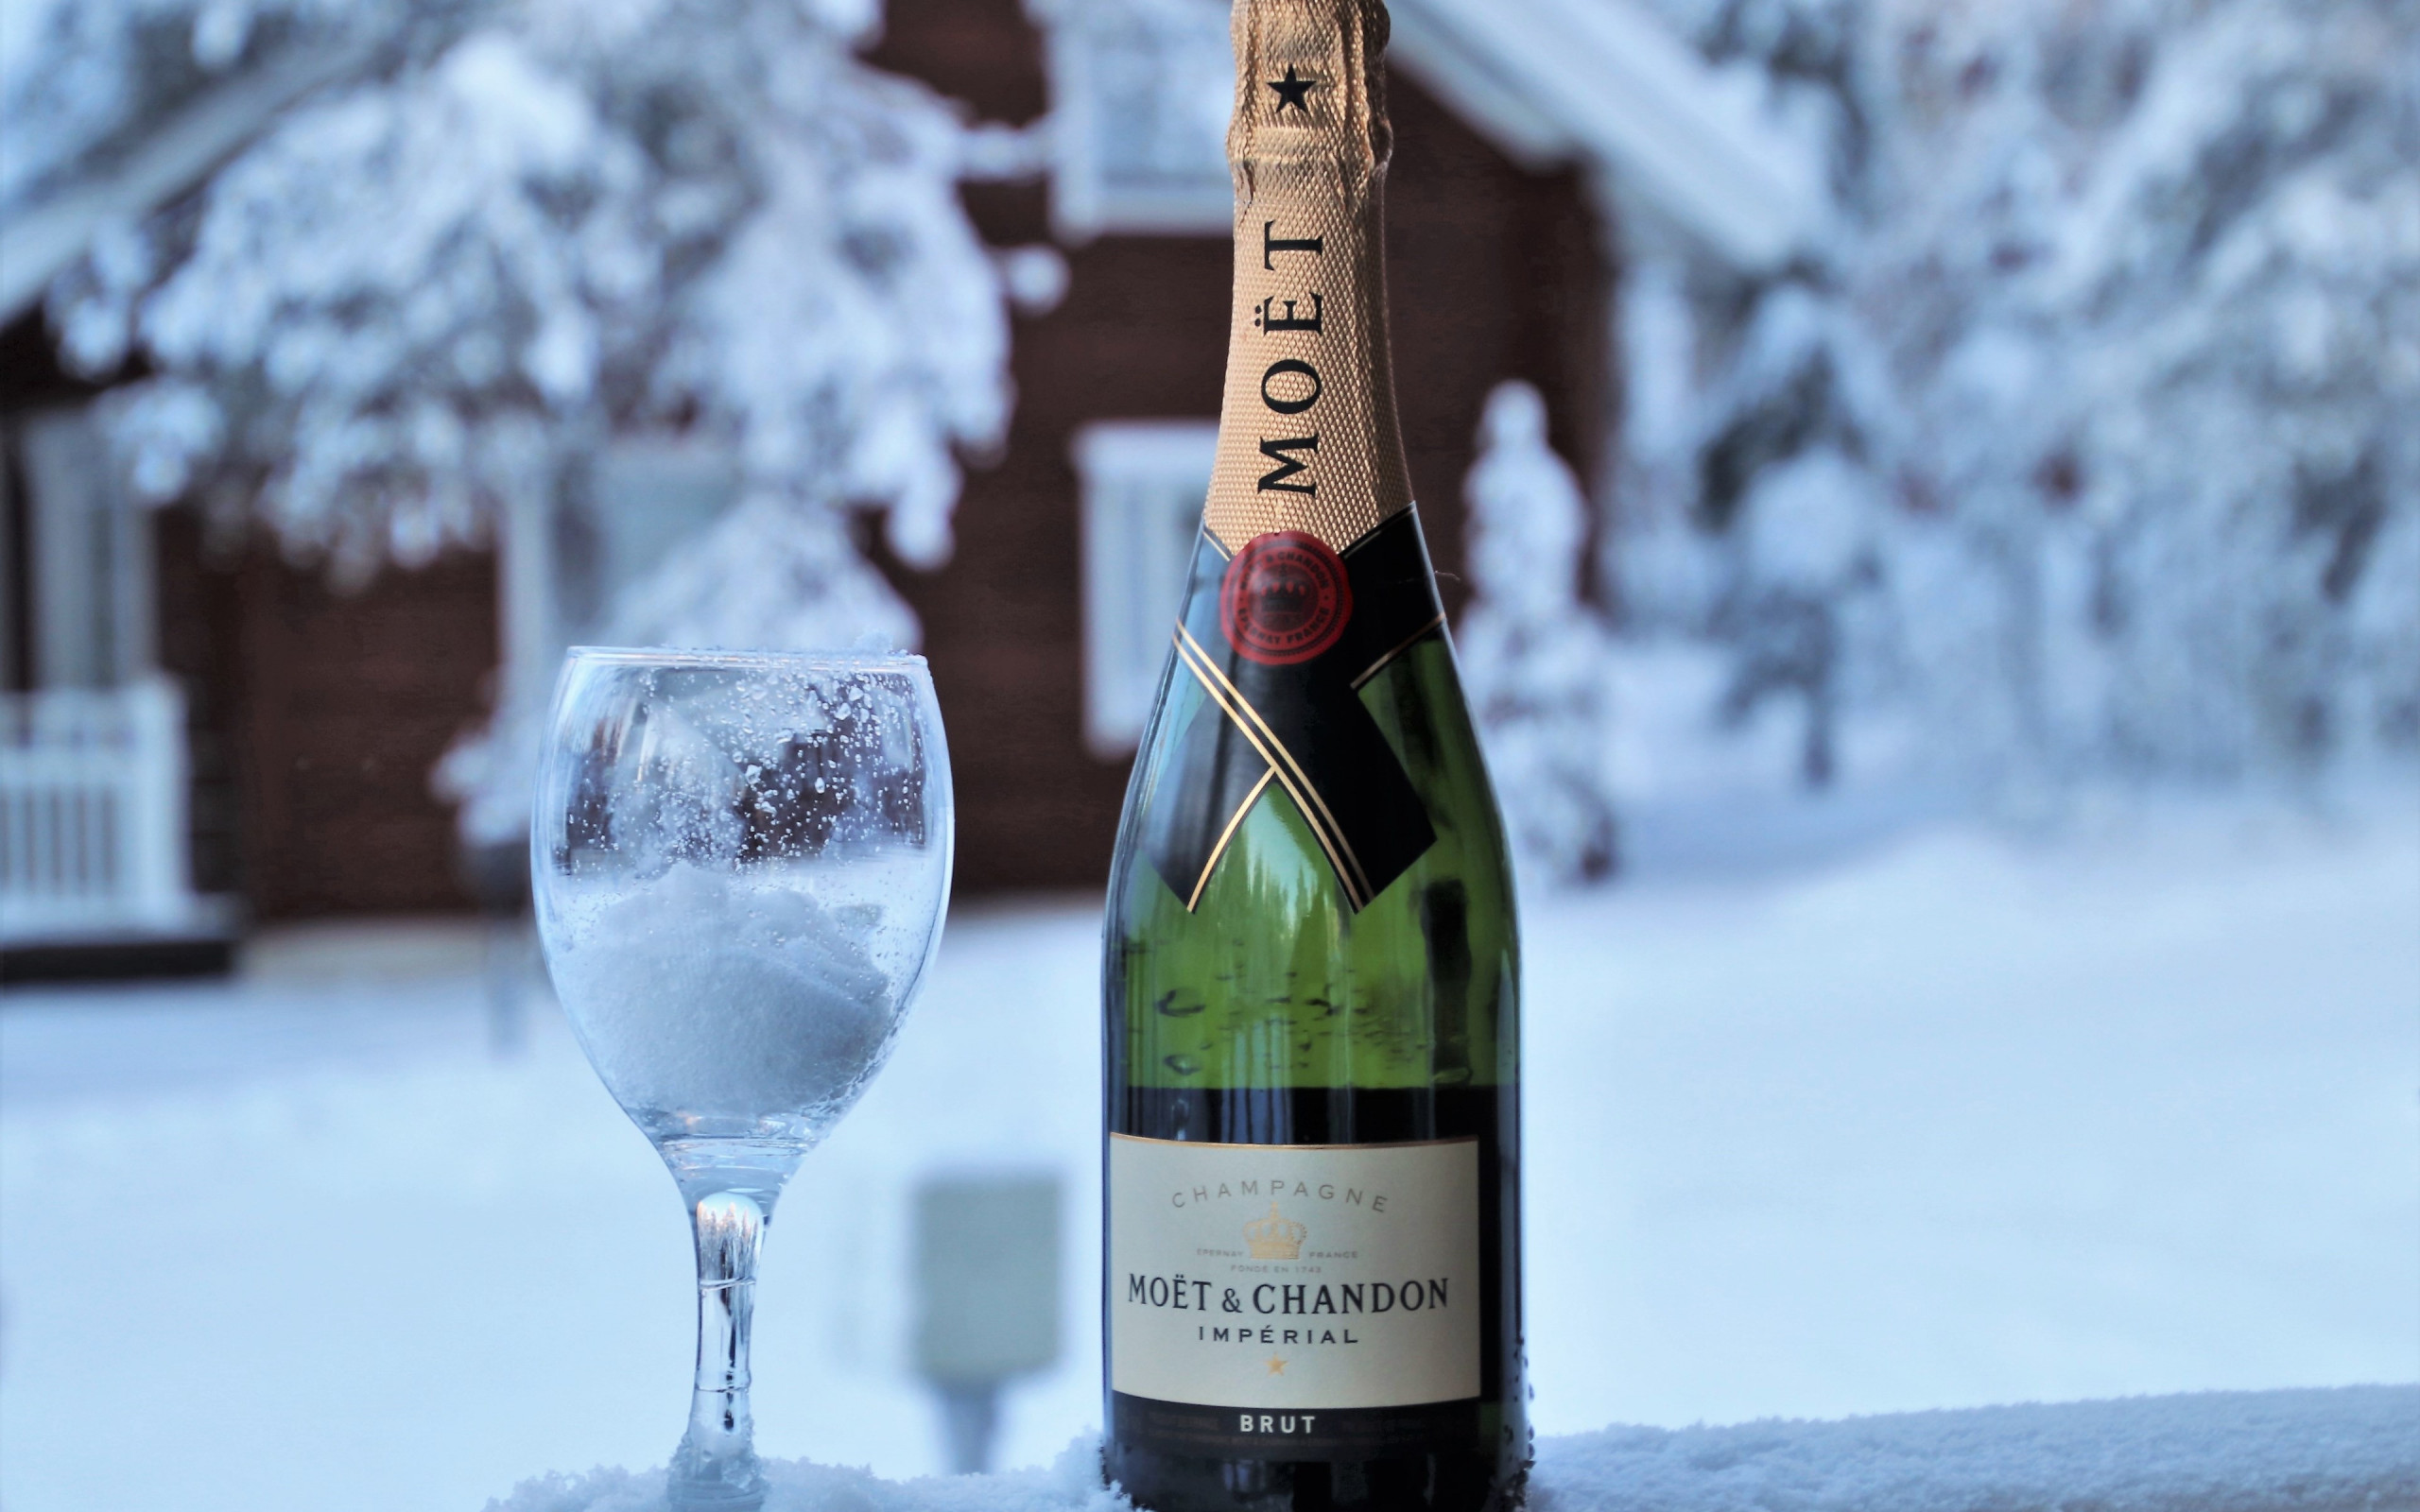 Moet champagne | 2560x1600 wallpaper